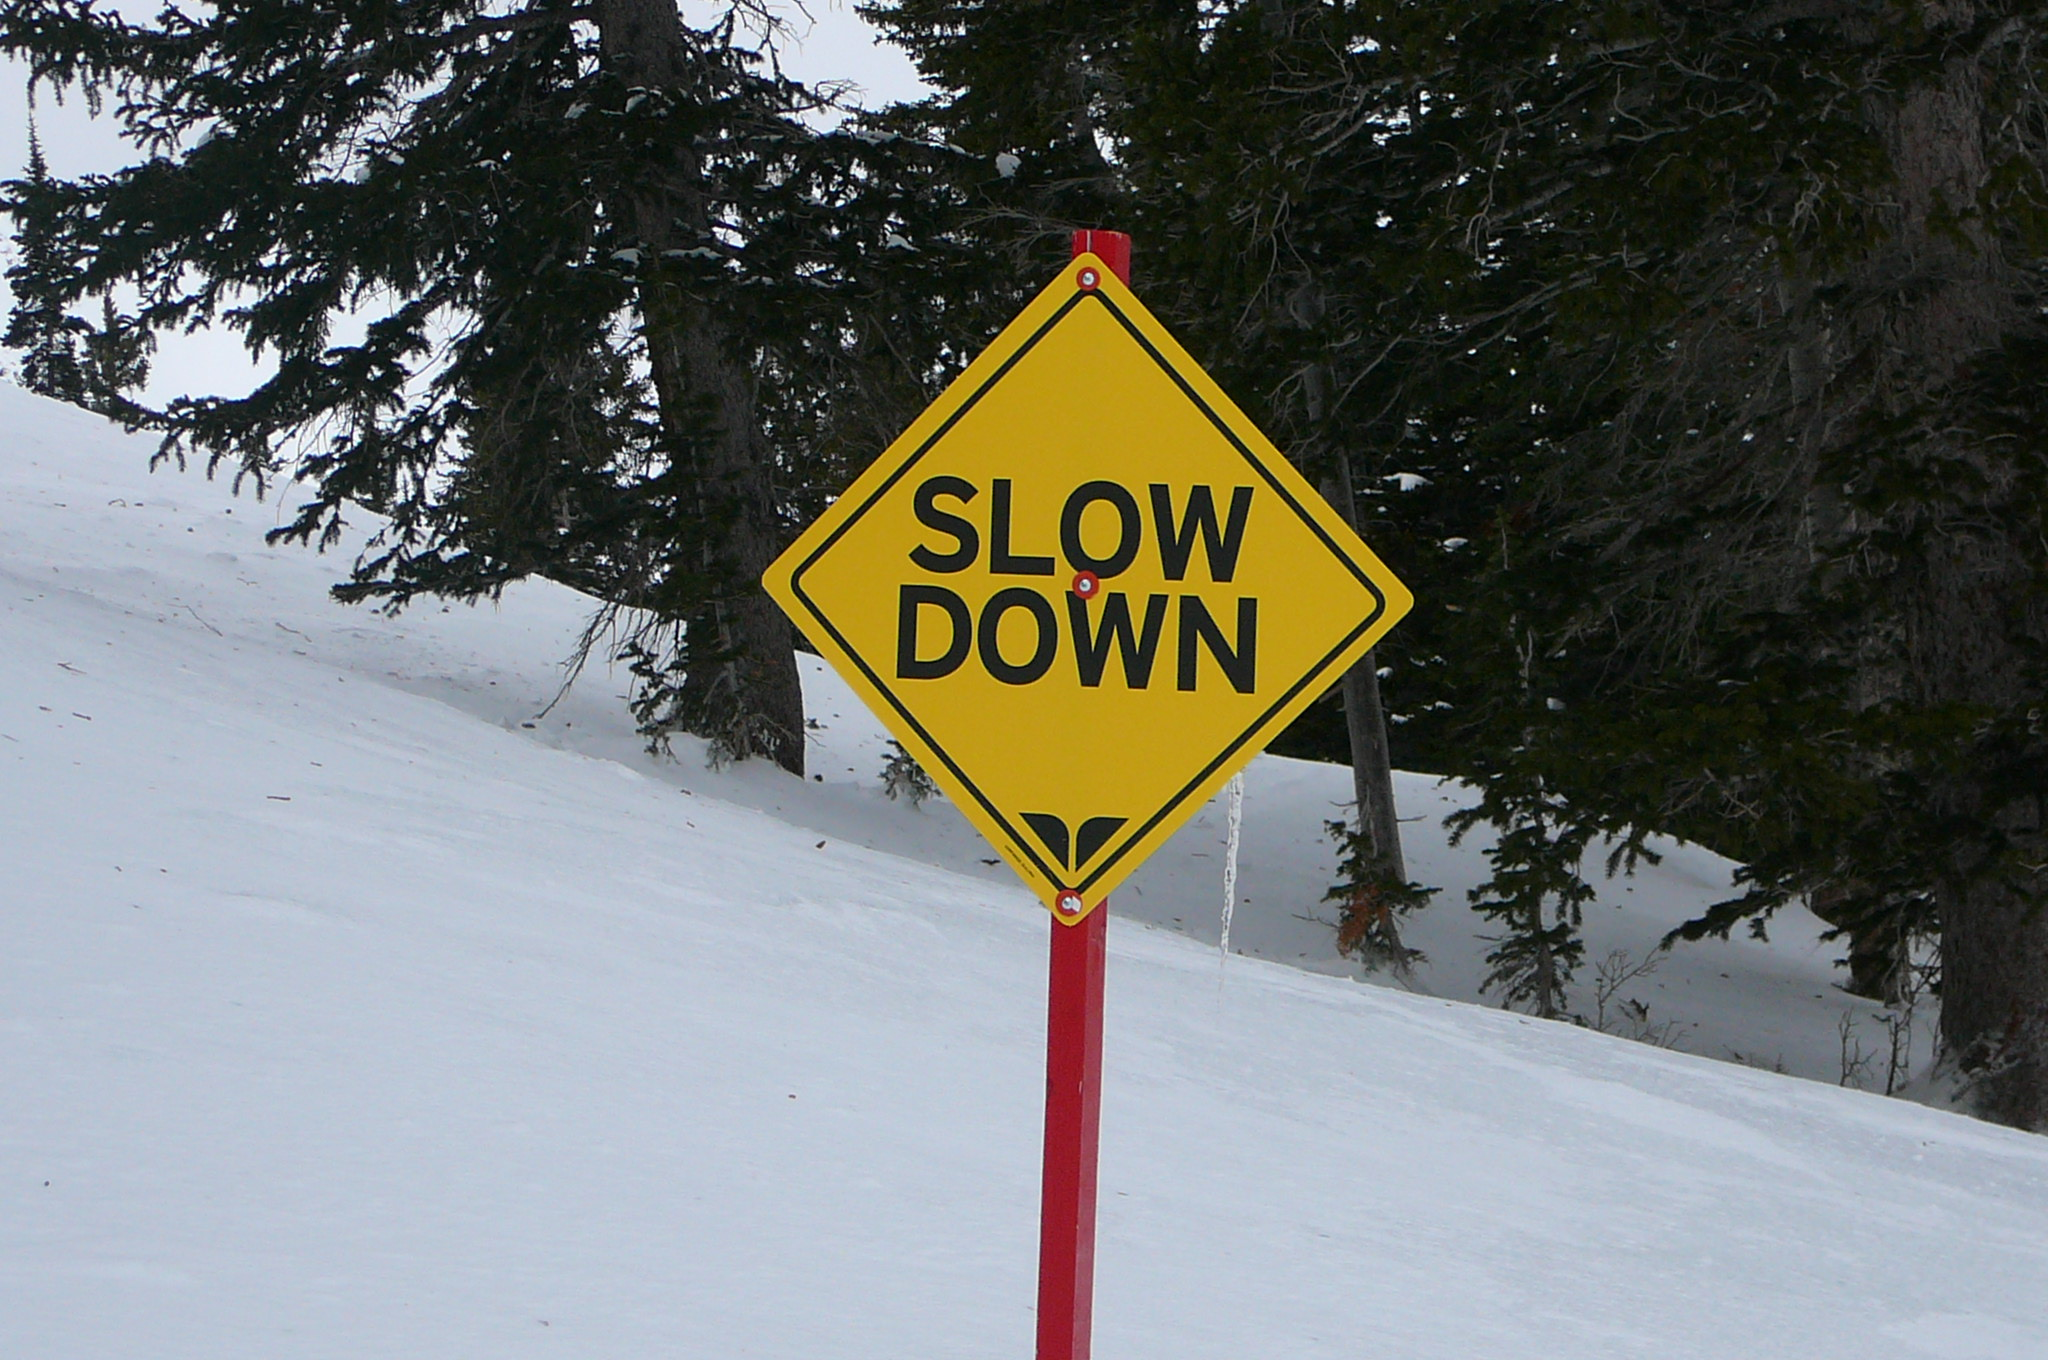 Instructional Ski Trail Sign